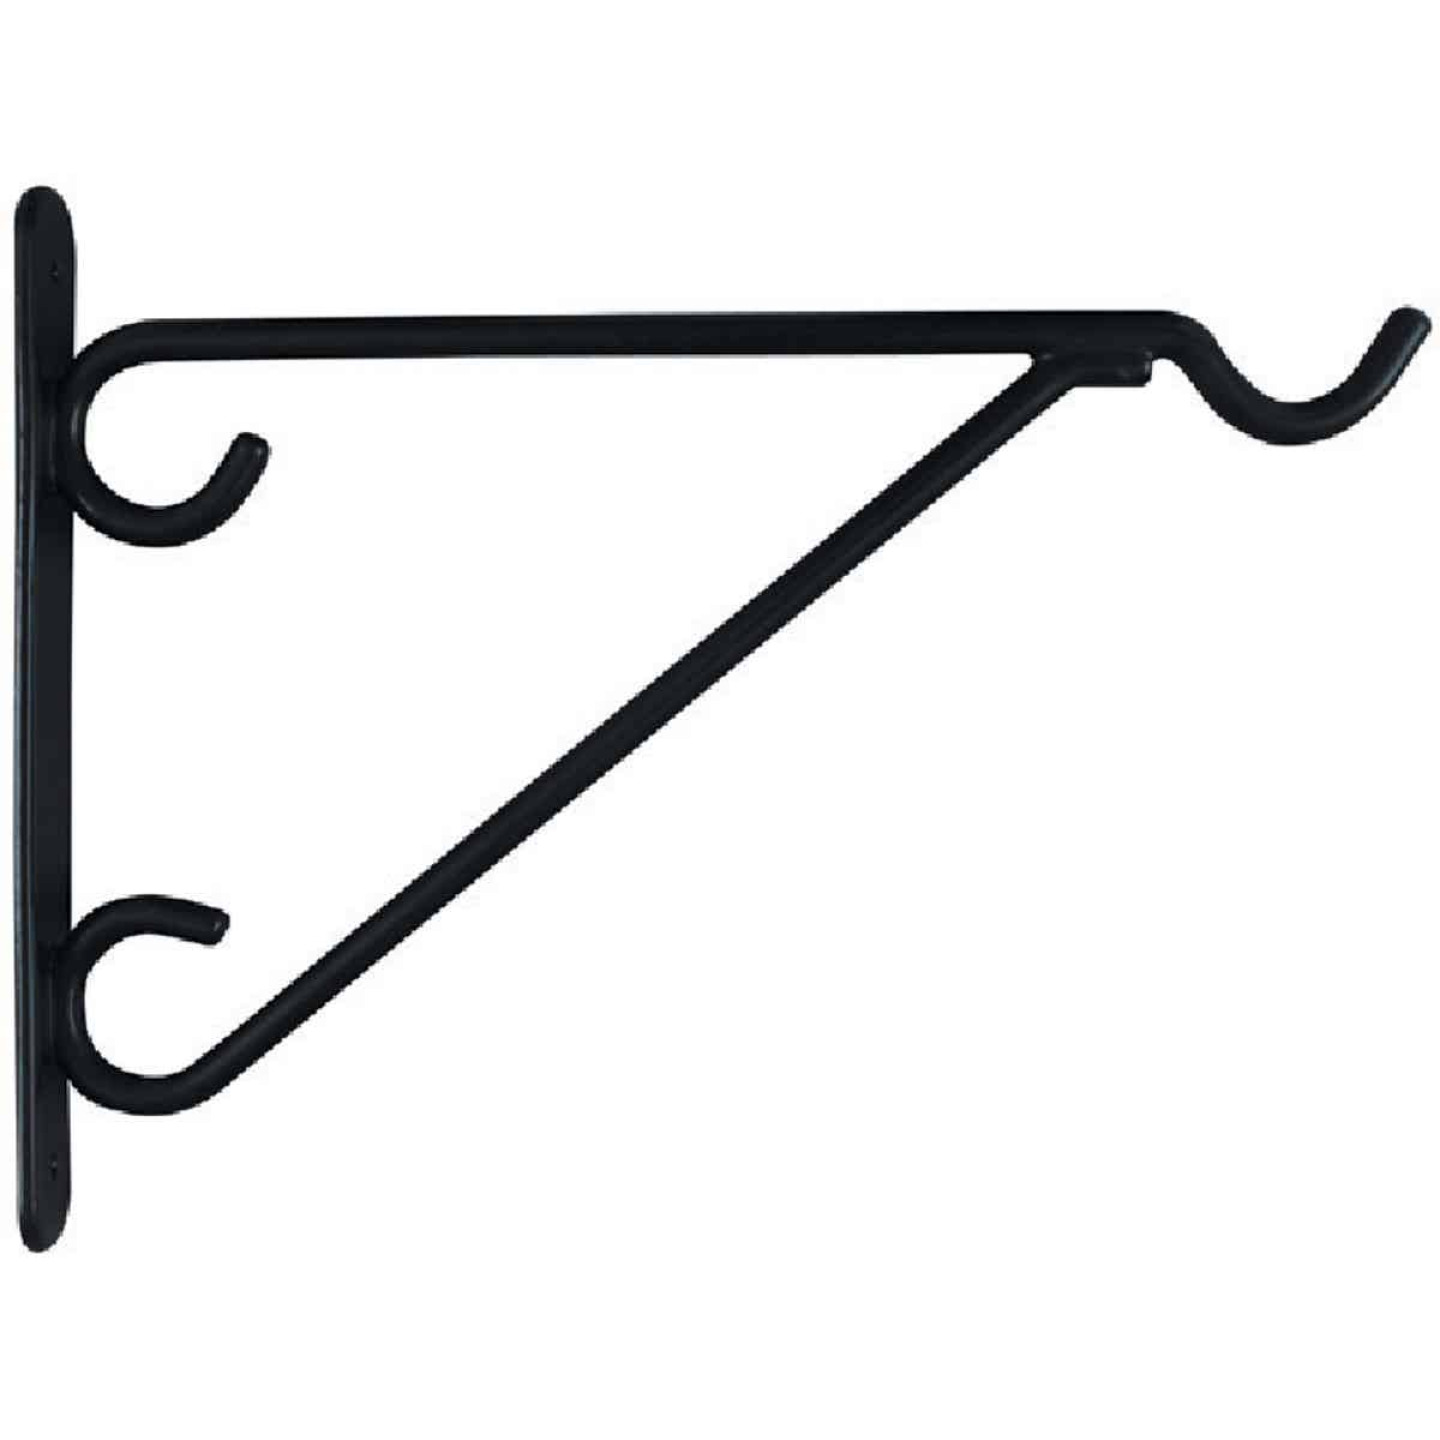 National 12 In. Black Vinyl-Coated Steel Plant Hanger Bracket Image 3